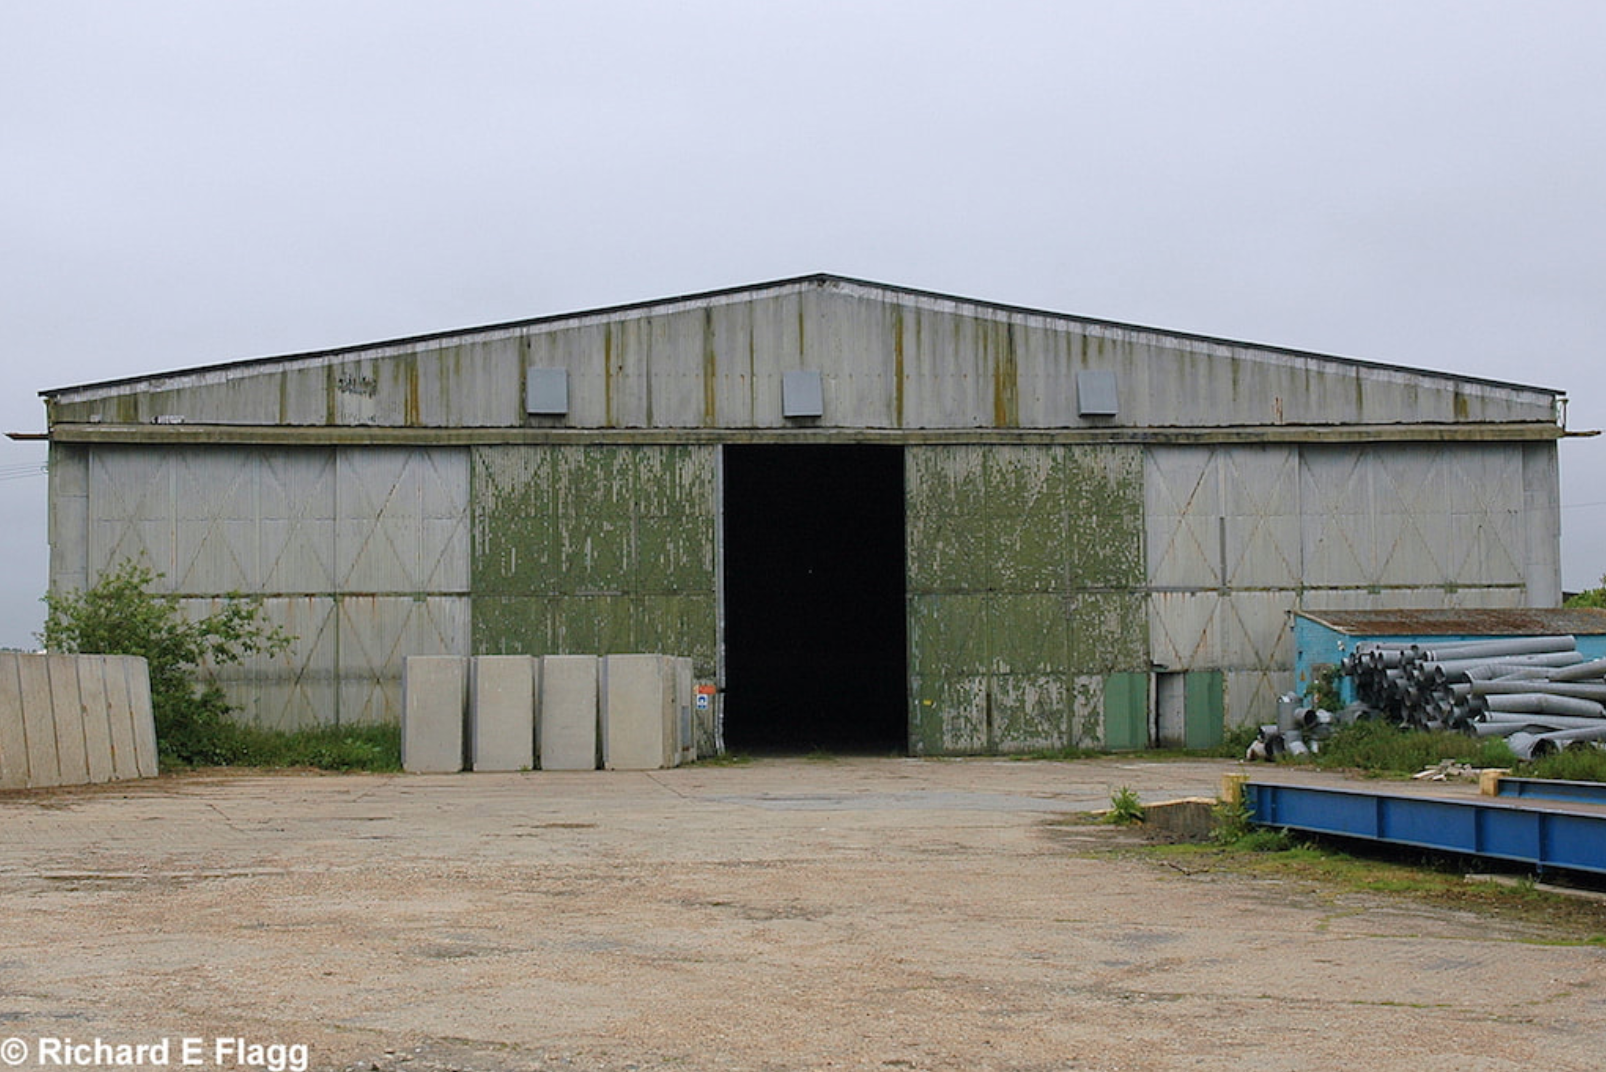 012T2 Type Aircraft Shed - 25 May 2007.png